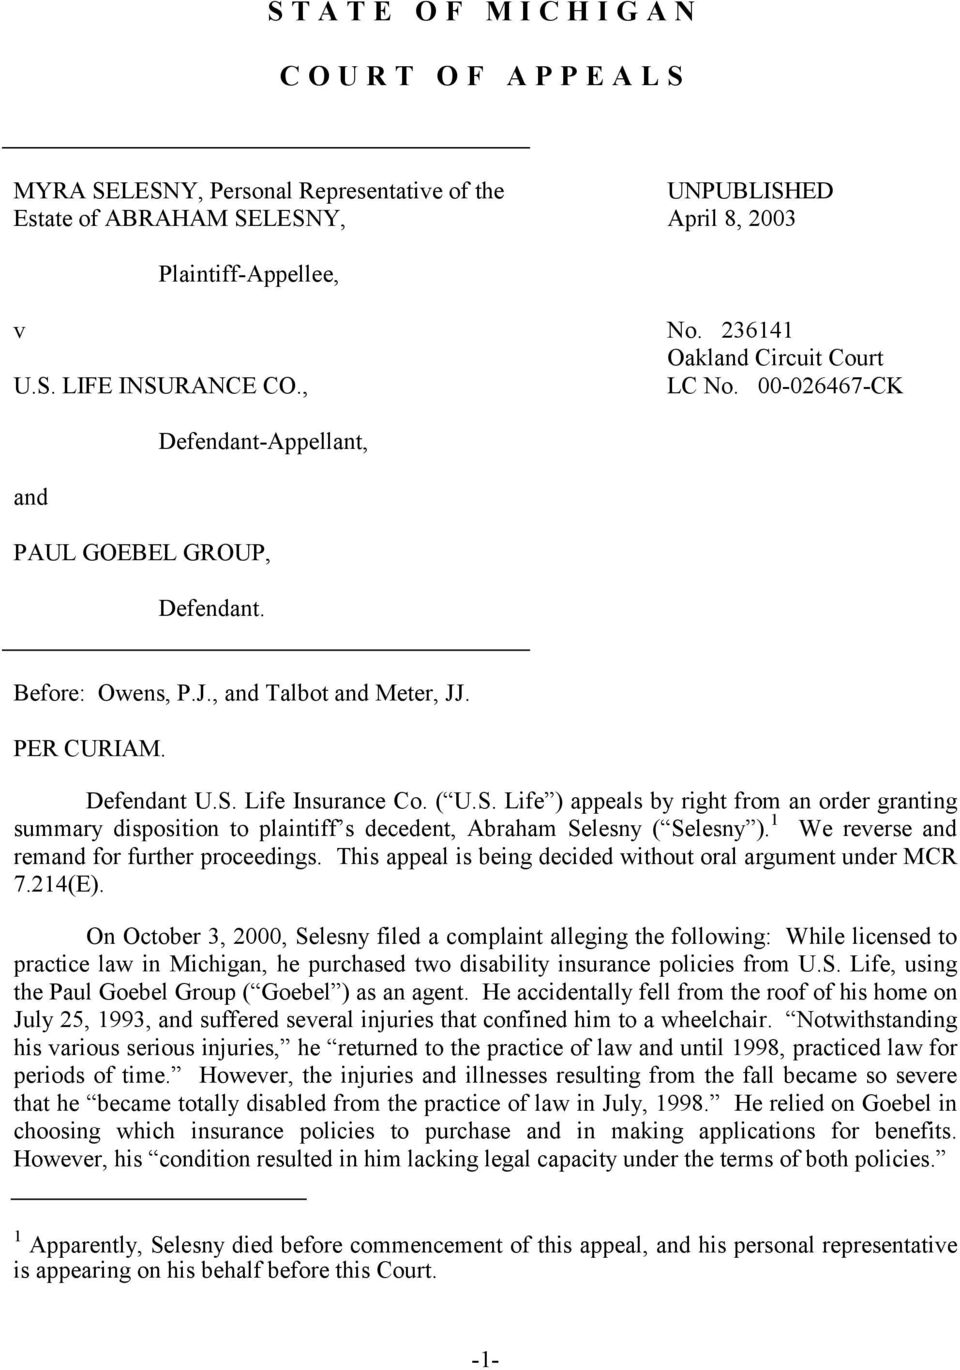 Life Insurance Co. ( U.S. Life ) appeals by right from an order granting summary disposition to plaintiff s decedent, Abraham Selesny ( Selesny ). 1 We reverse and remand for further proceedings.